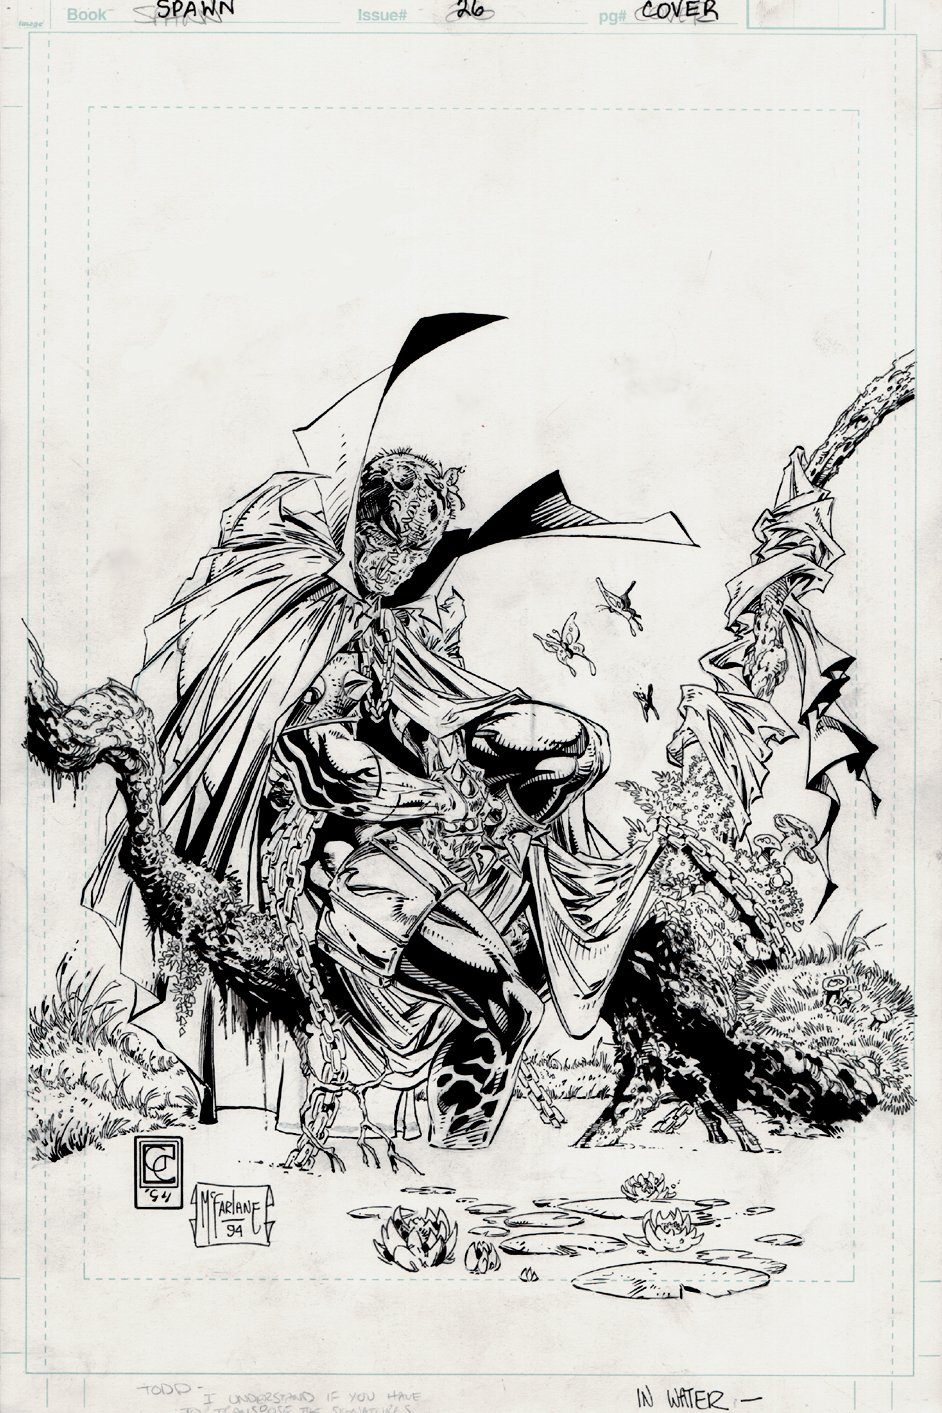 Spawn #26 Cover (EARLIEST McFARLANE SPAWN COVER OFFERED FOR SALE?) 1994)